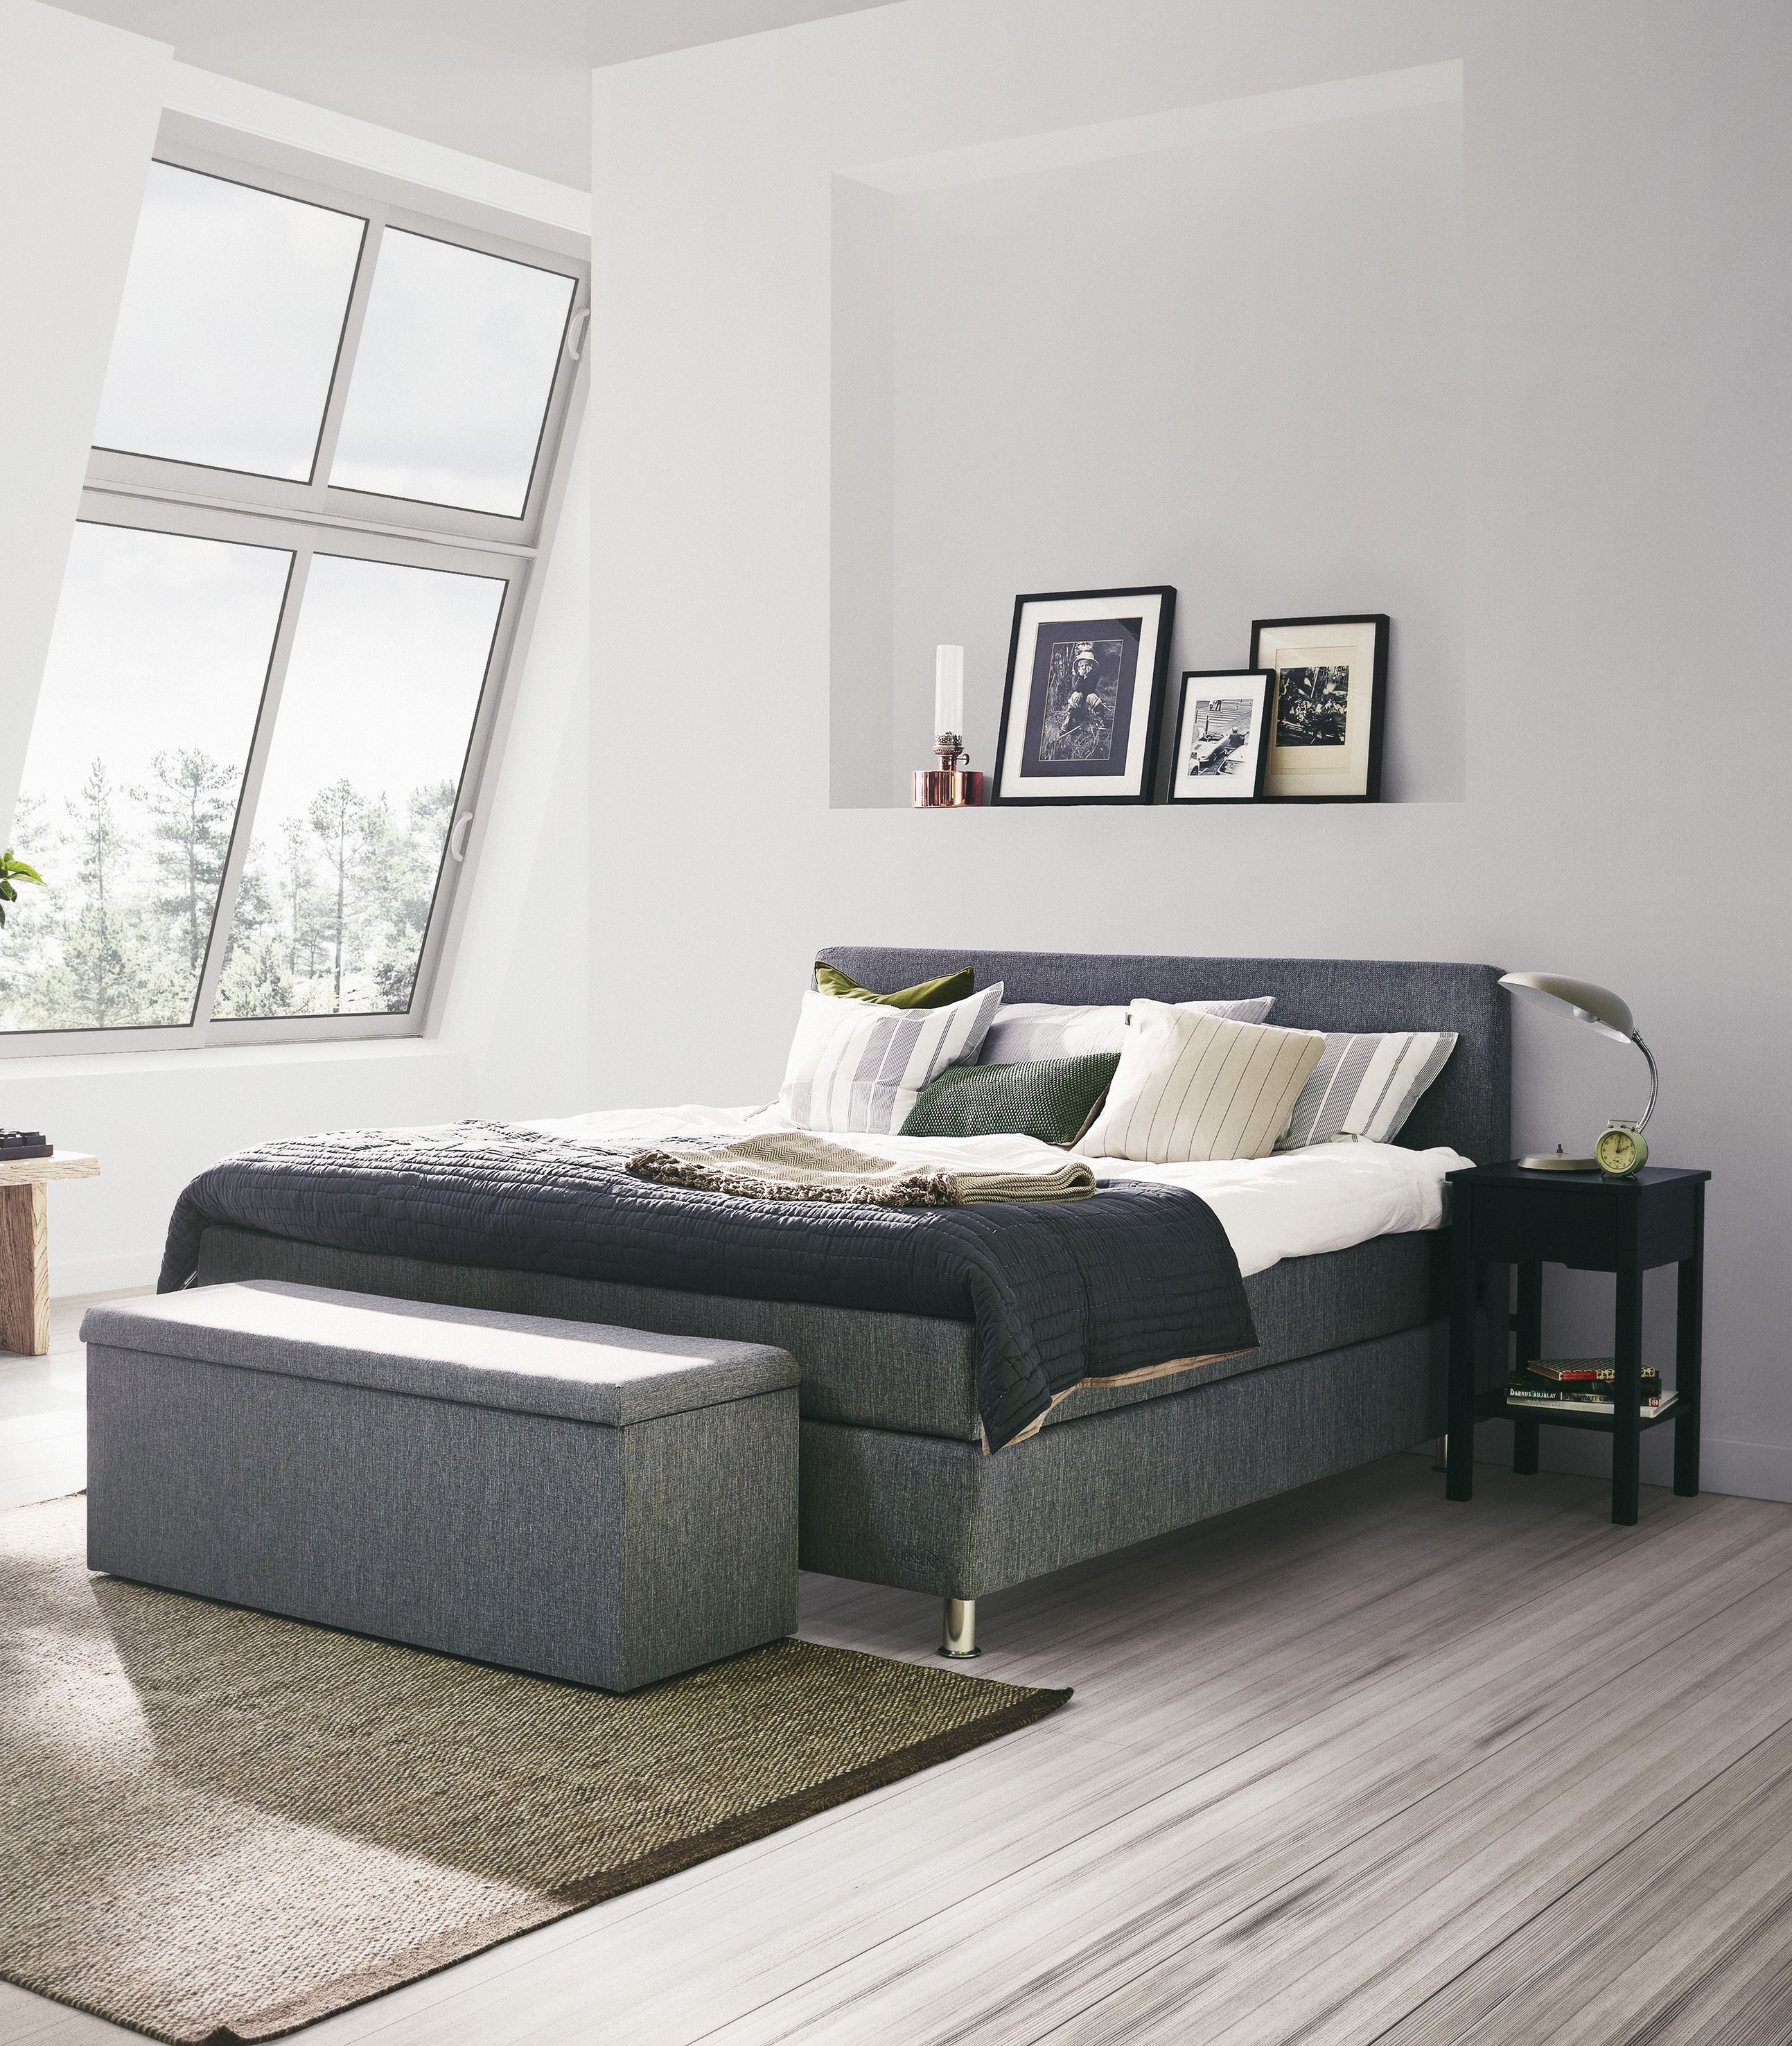 Jensen Signature J3 Continental Bed In Grey Textiles